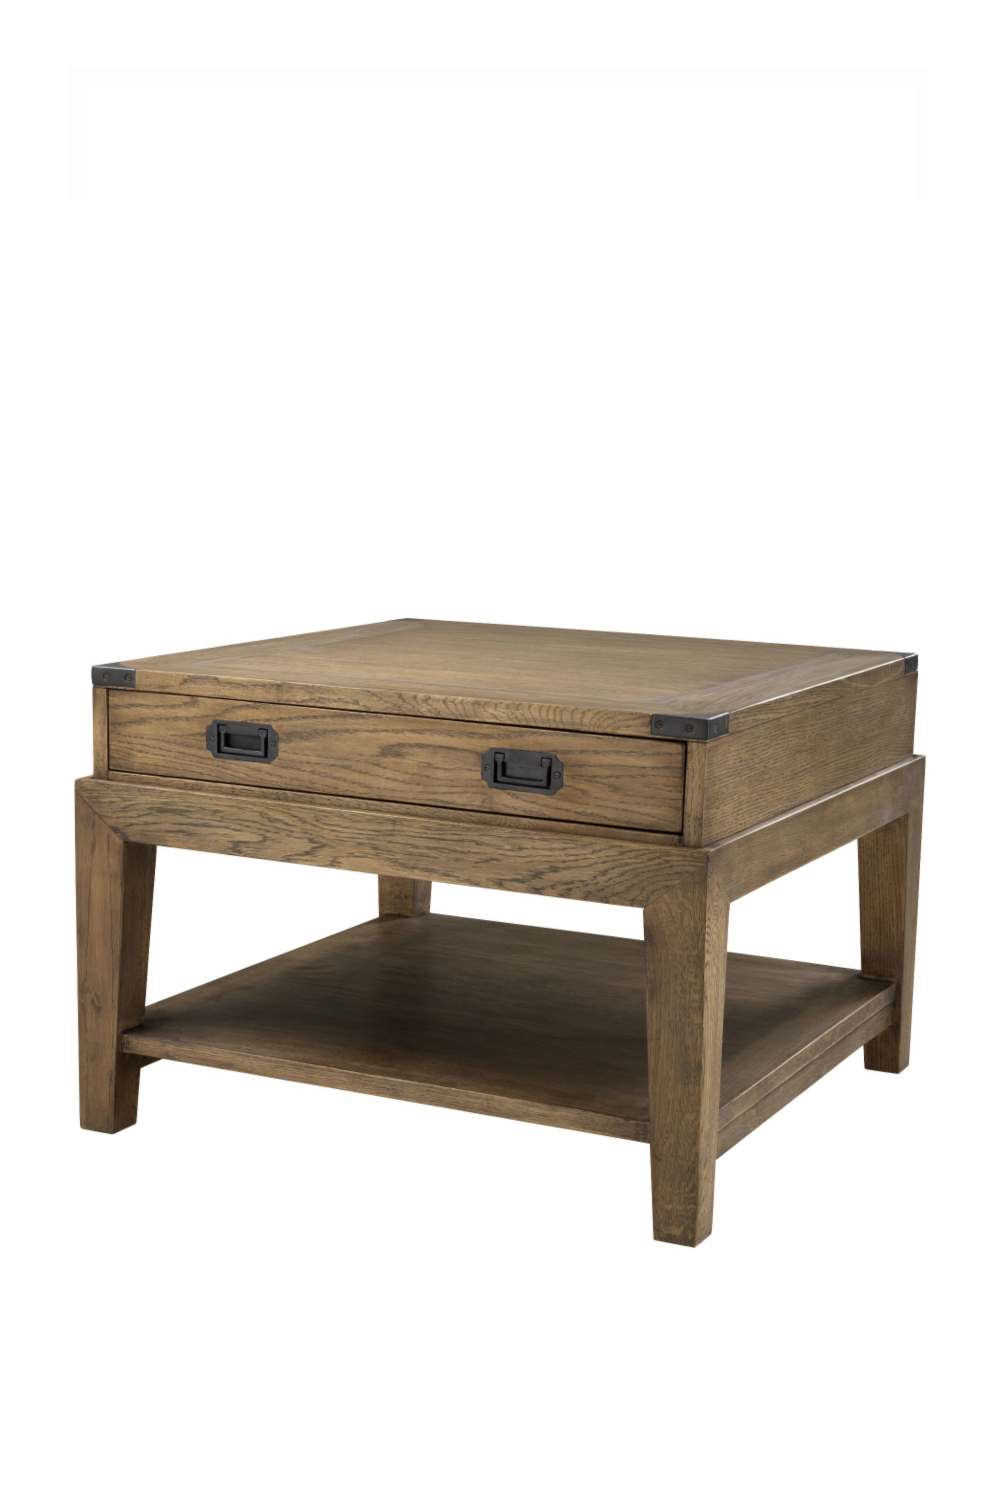 Wooden Side Table | Eichholtz Military | #1 Eichholtz Online Retailer